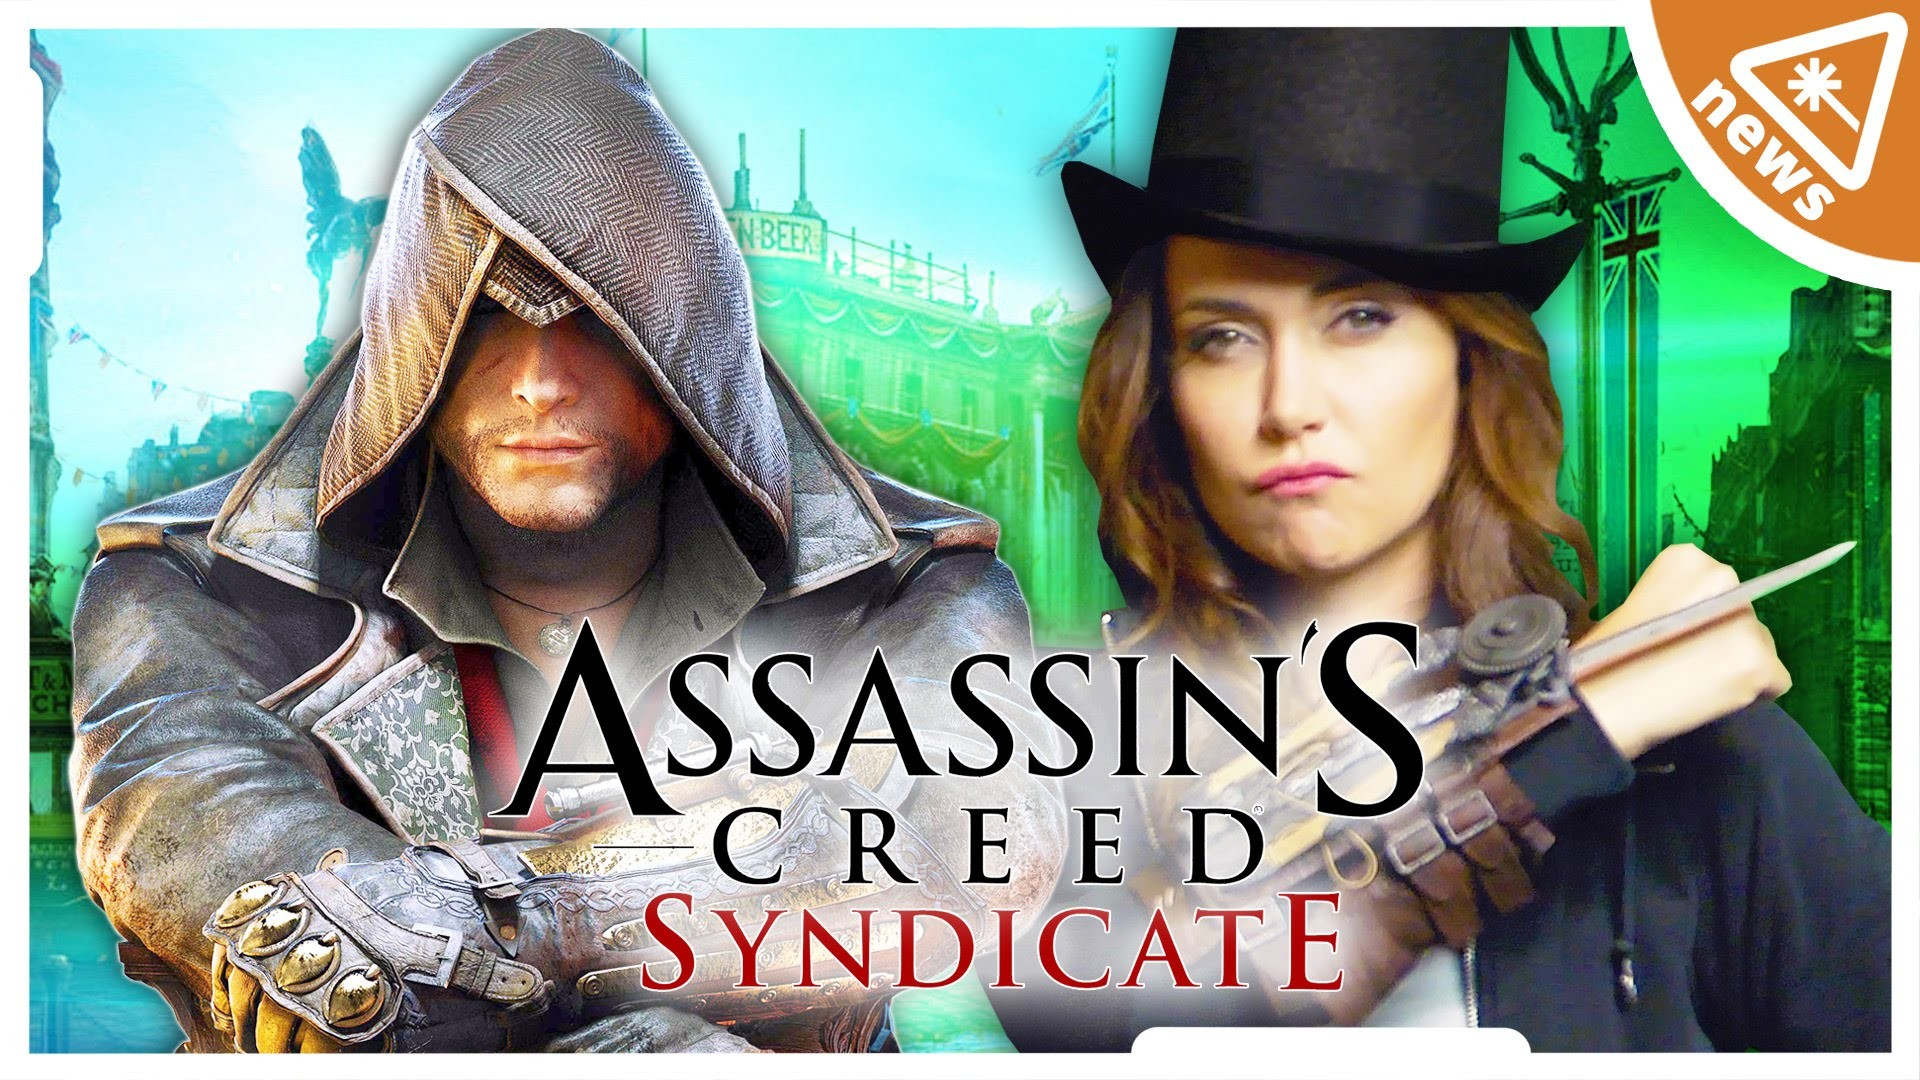 First Look at ASSASSIN'S CREED SYNDICATE (Nerdist News w/ Jessica Chobot) –  YouTube